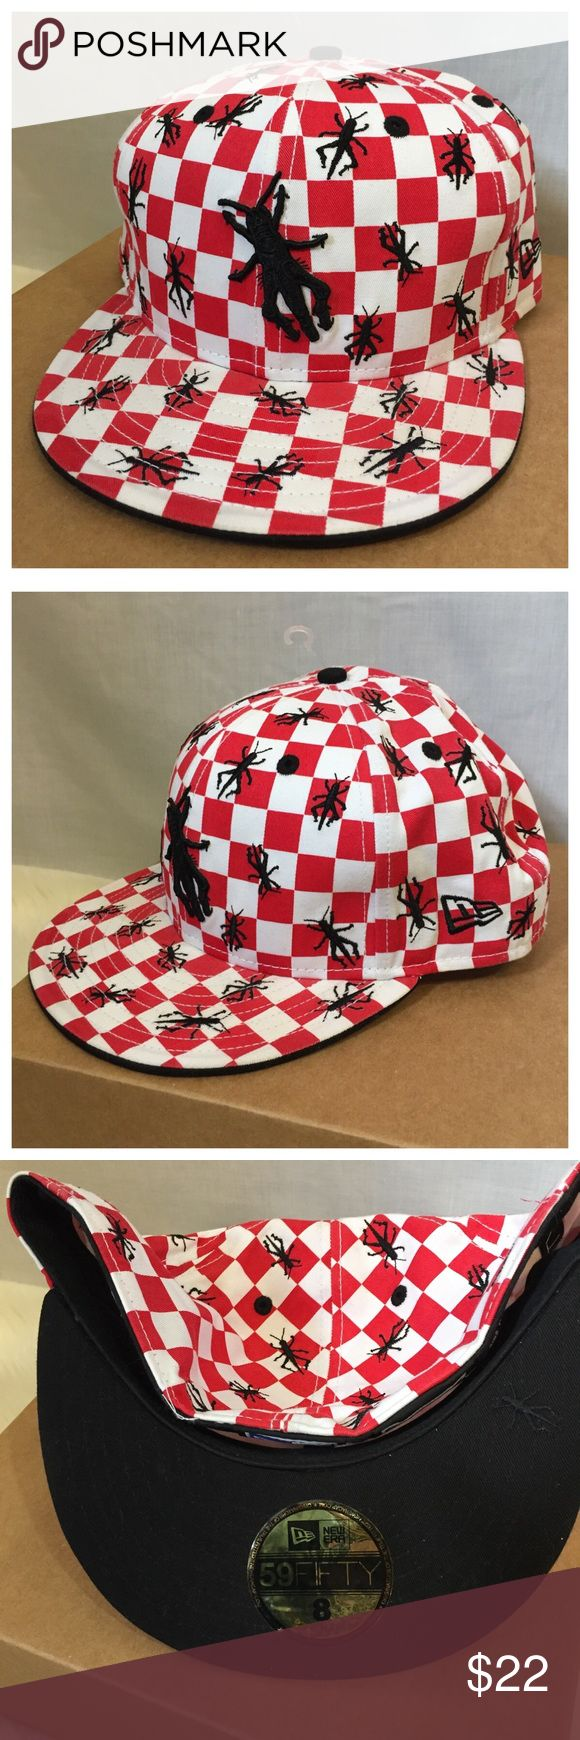 New Era 59Fifty Fitted Hat Picnic Tablecloth Ants New Era 59Fifty Fitted Hat Size 8 Red White Picnic Tablecloth Ants Insects 🐜  • Fitted cap  • Size 8 • Red and white checkerboard background with black embroidered ants insects • Ruining your picnic • Underside of lid is black • Gently worn, good pre-loved condition, no rips, stains, or tears New Era Accessories Hats